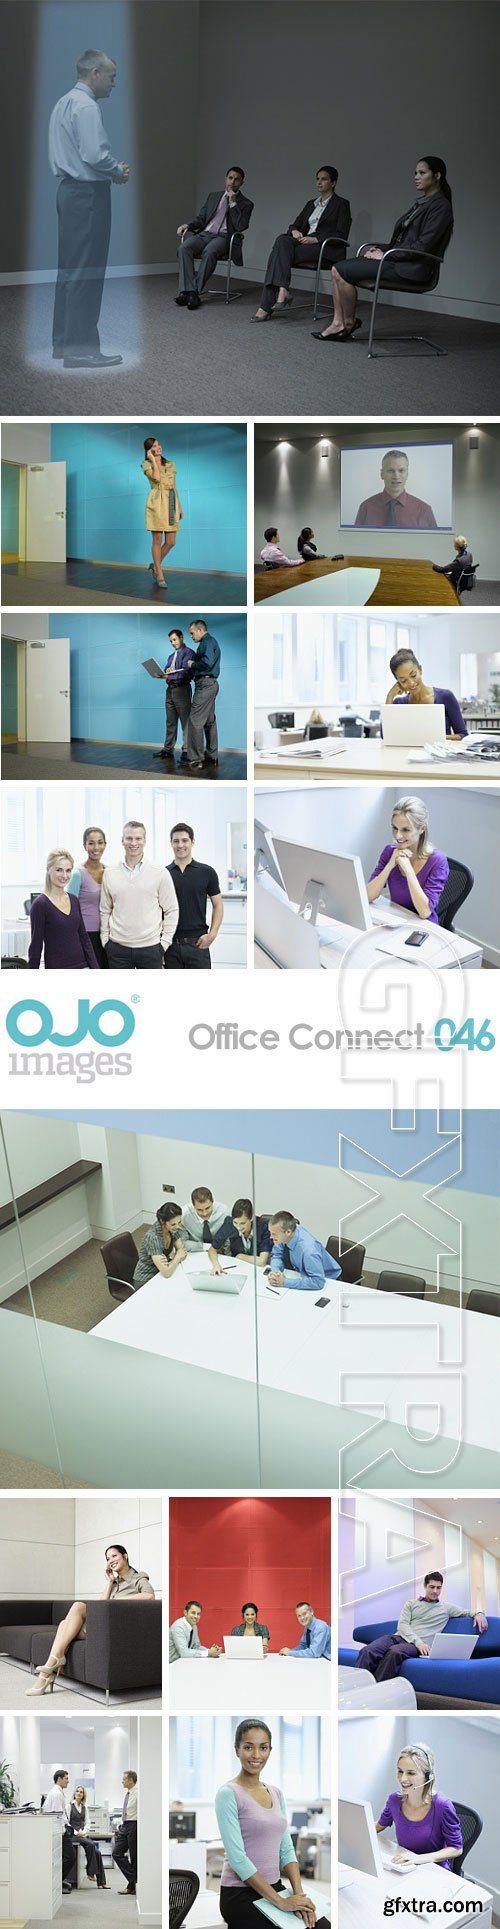 OJO Images OJ046 Office Connect